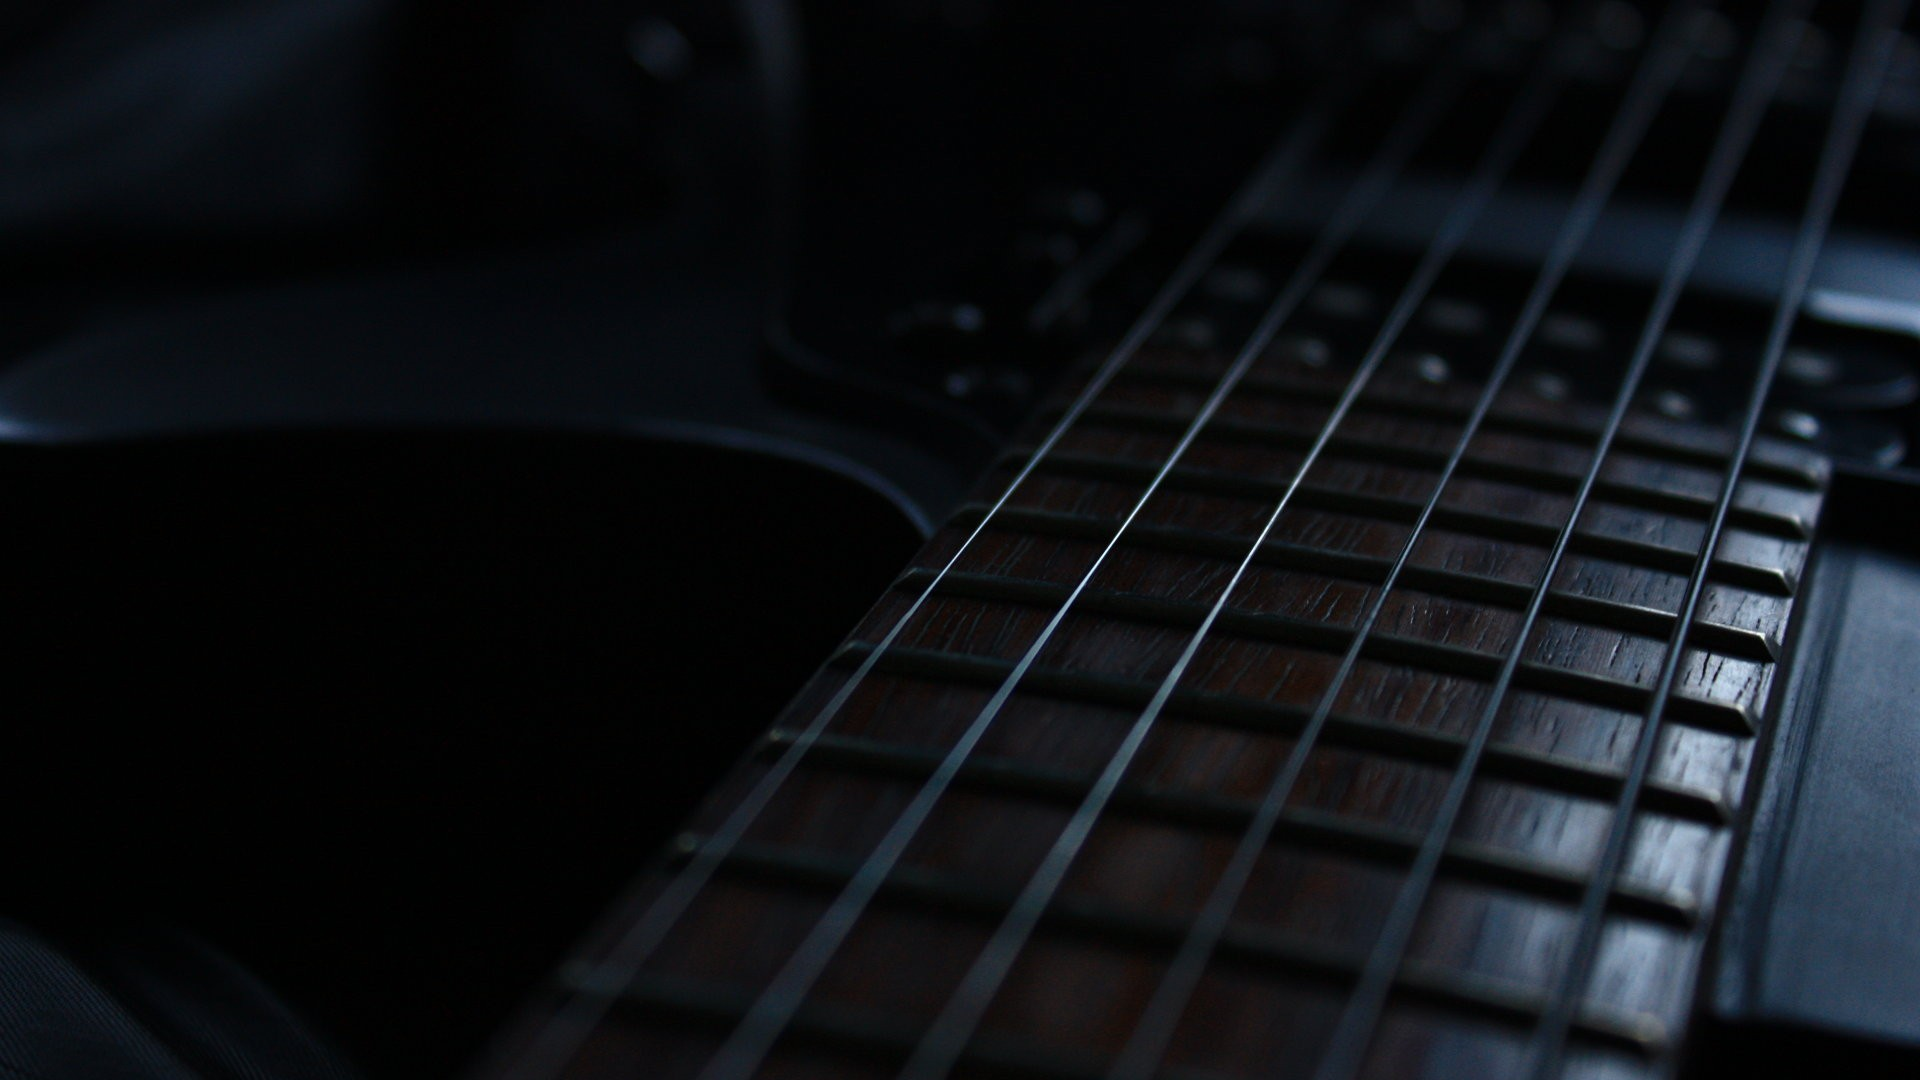 Wallpapers Guitars  Android Apps on Google Play 1920x1080